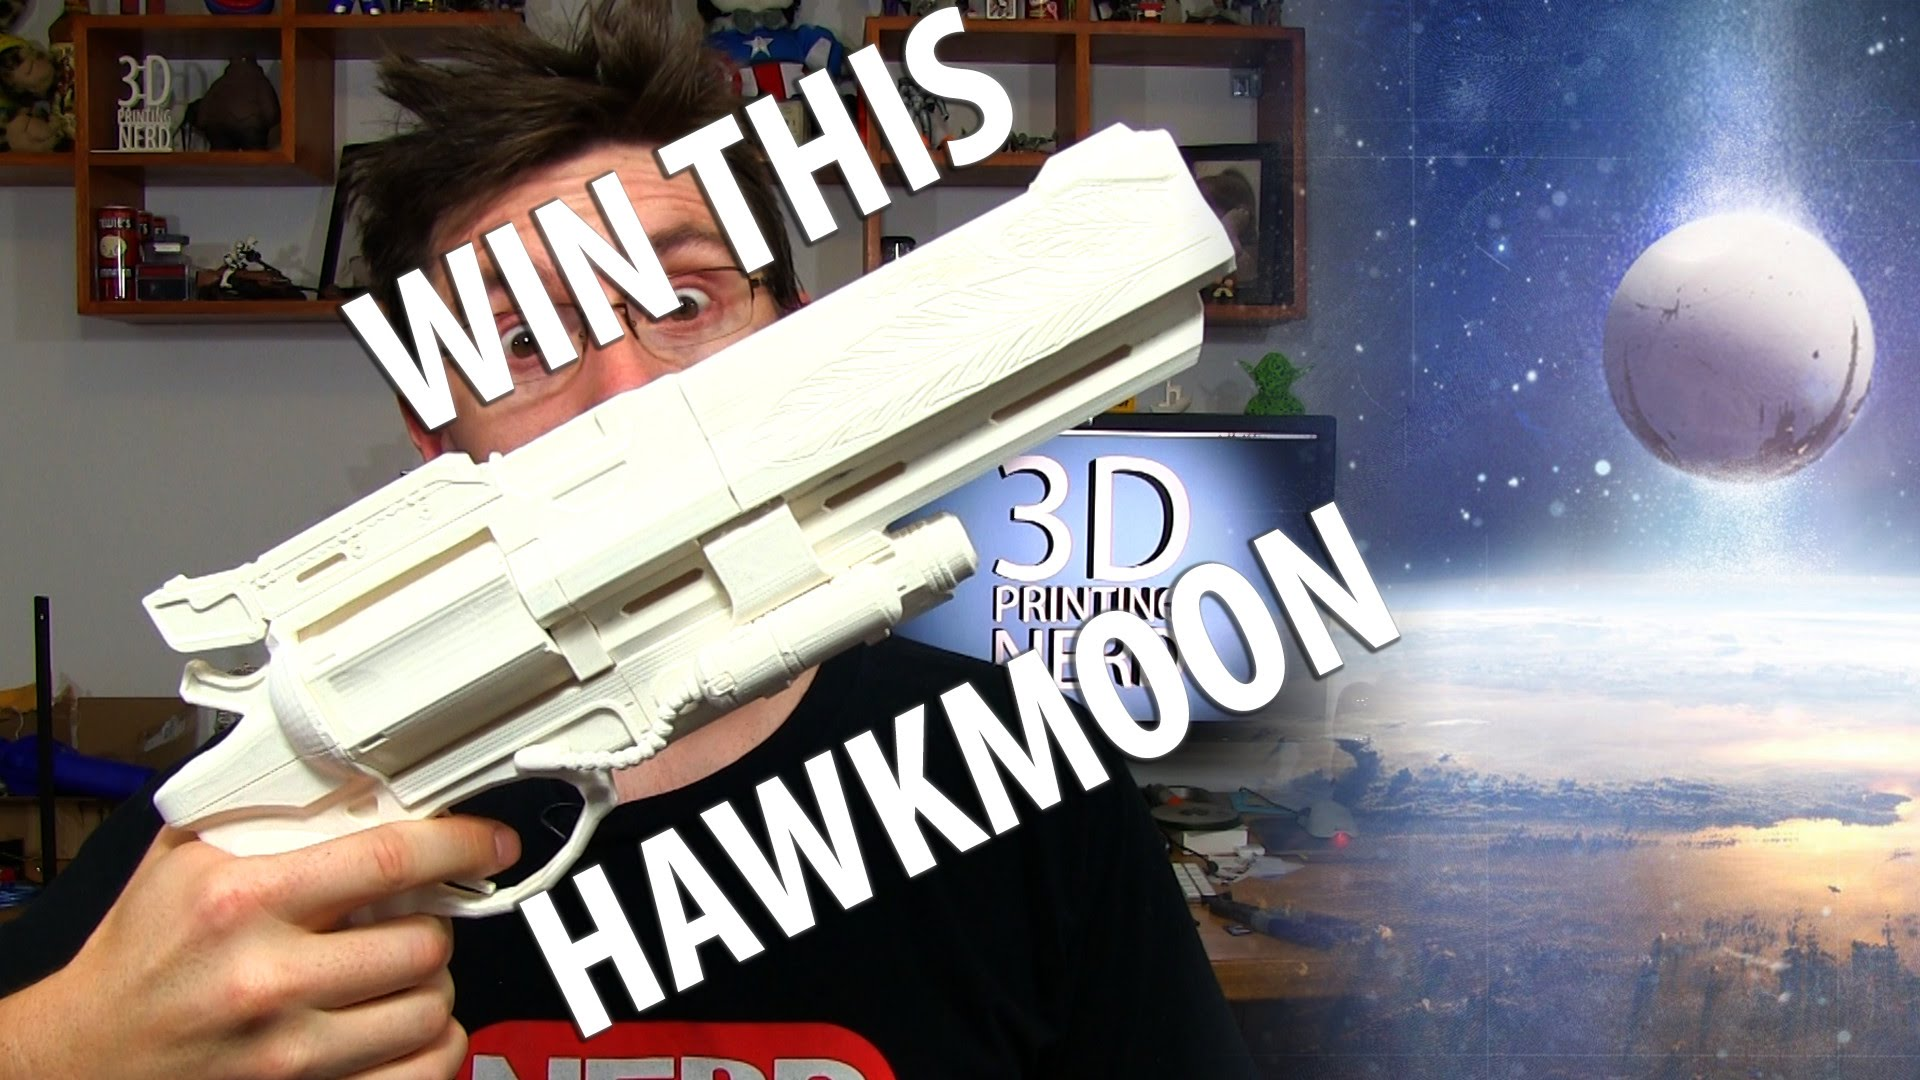 Contest Over – Win This Hawkmoon